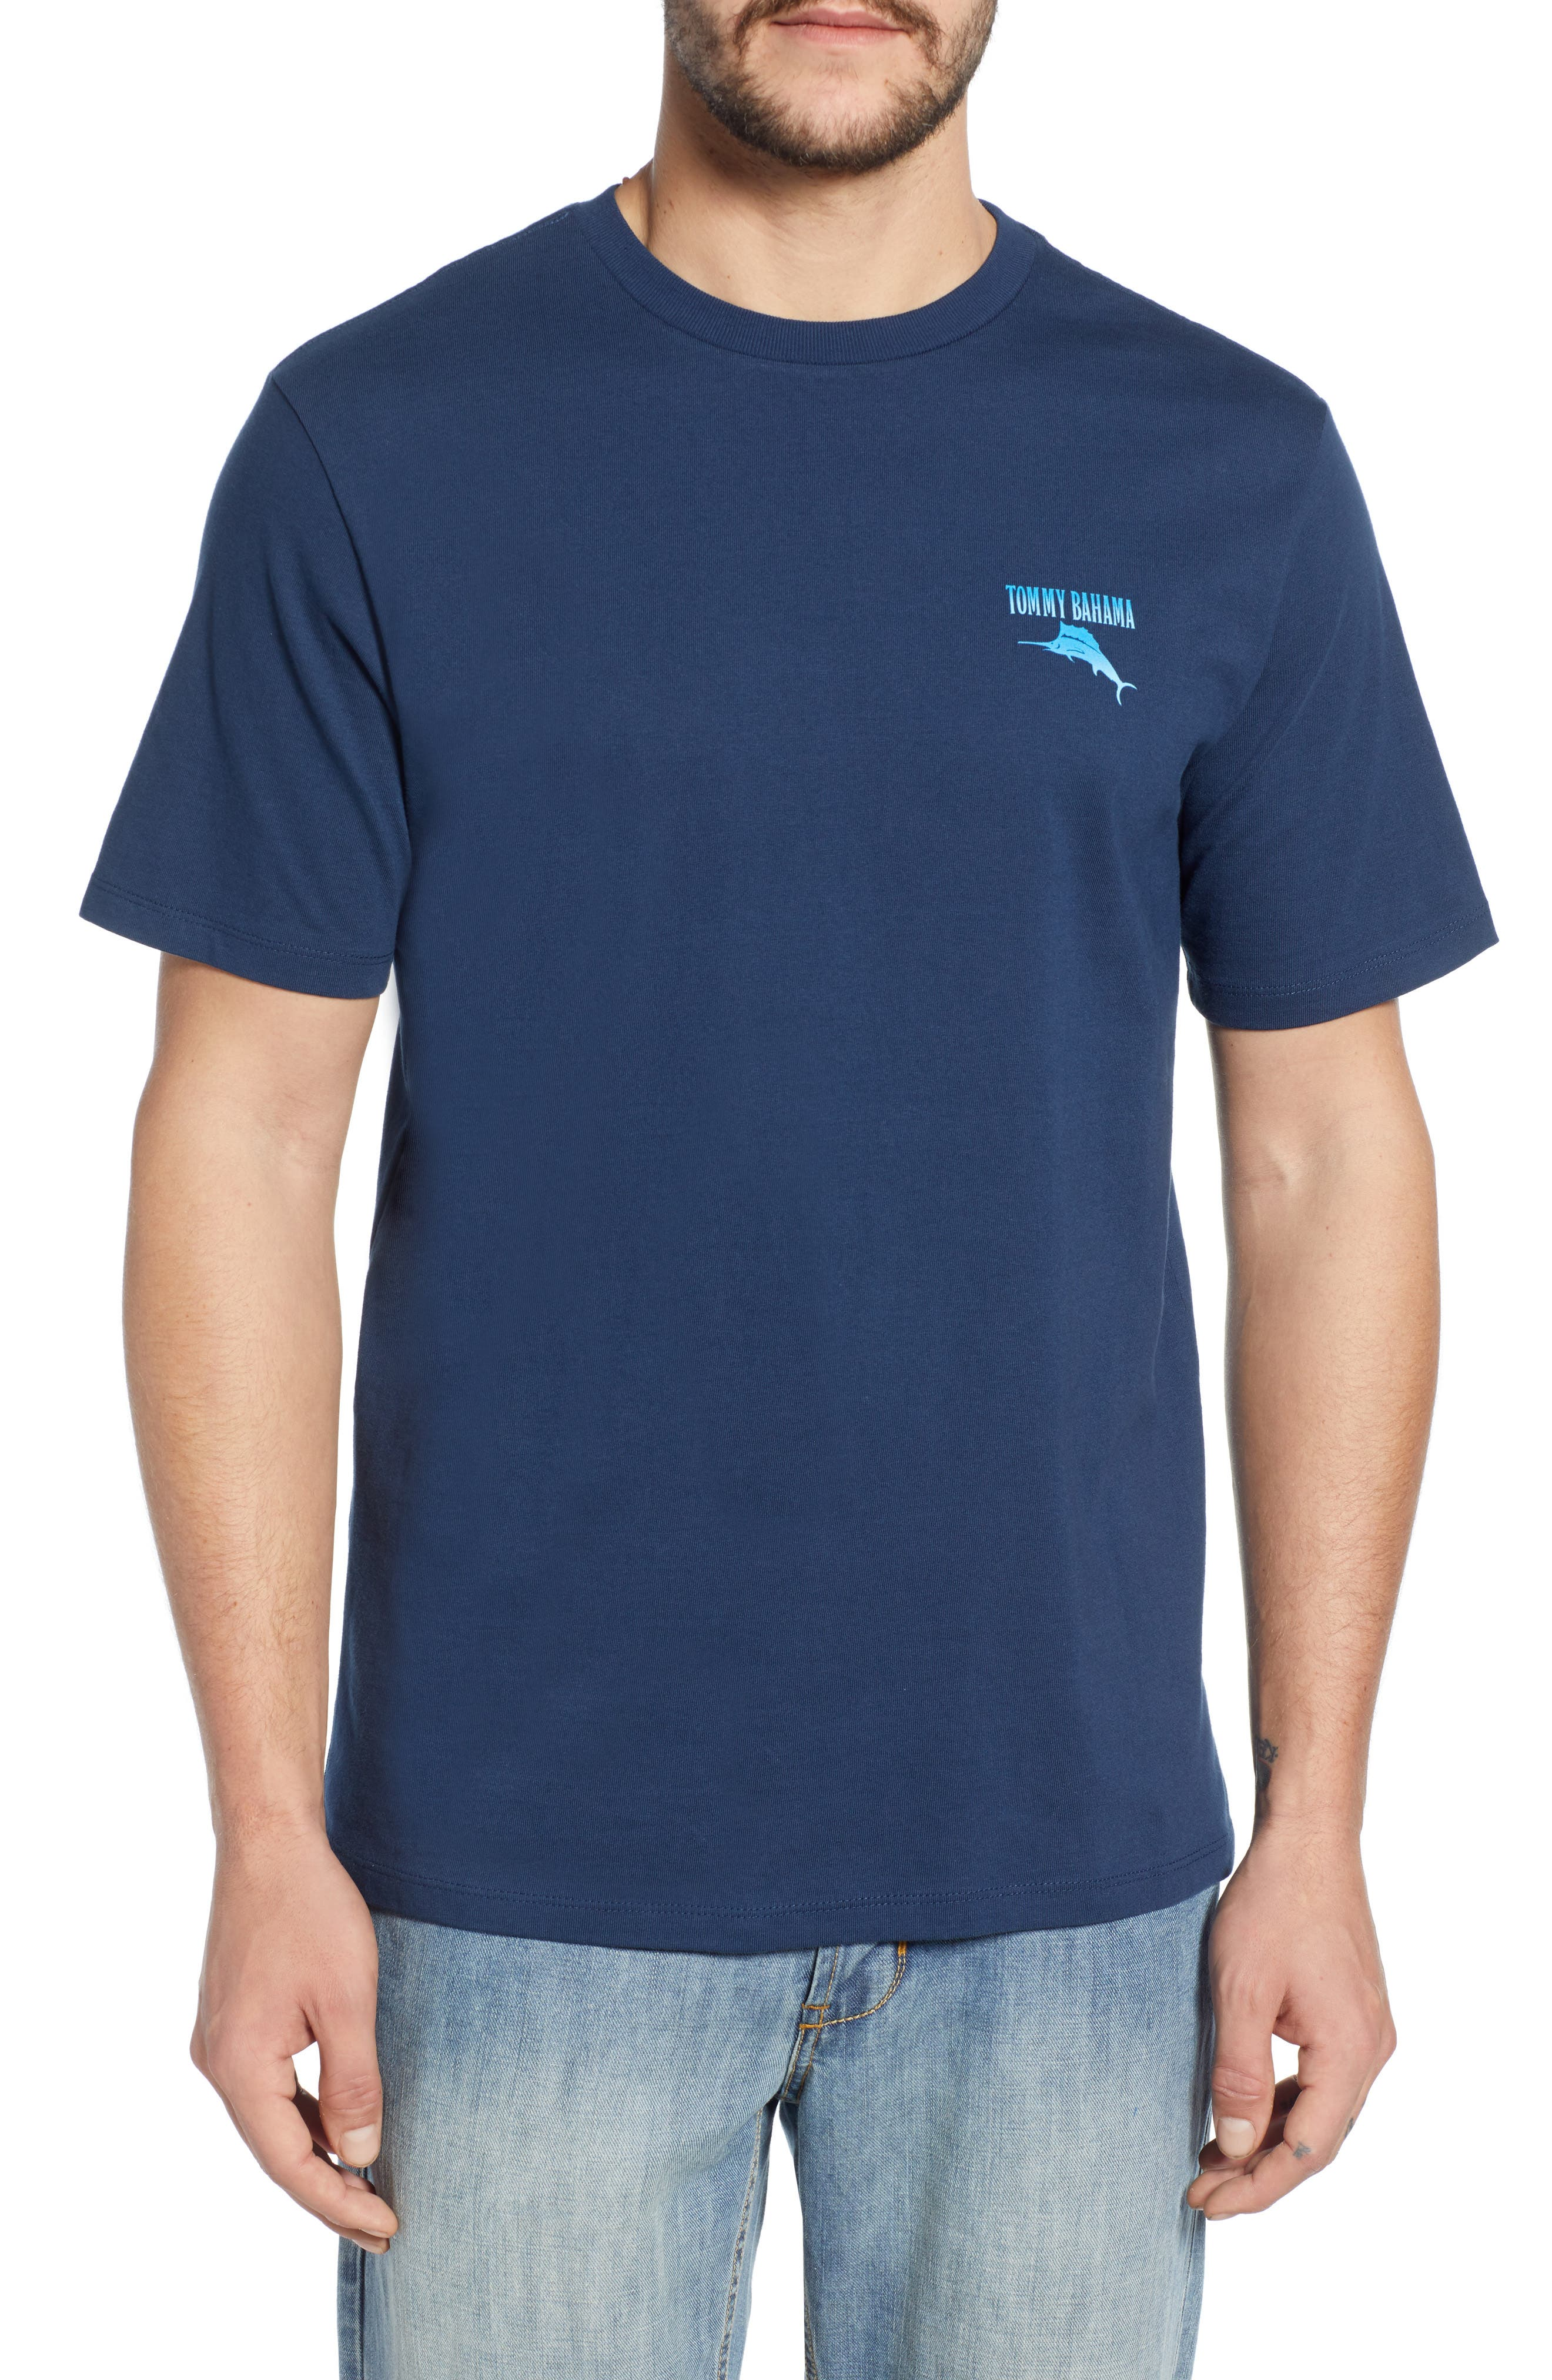 Raise Your Game Graphic T Shirt by Tommy Bahama